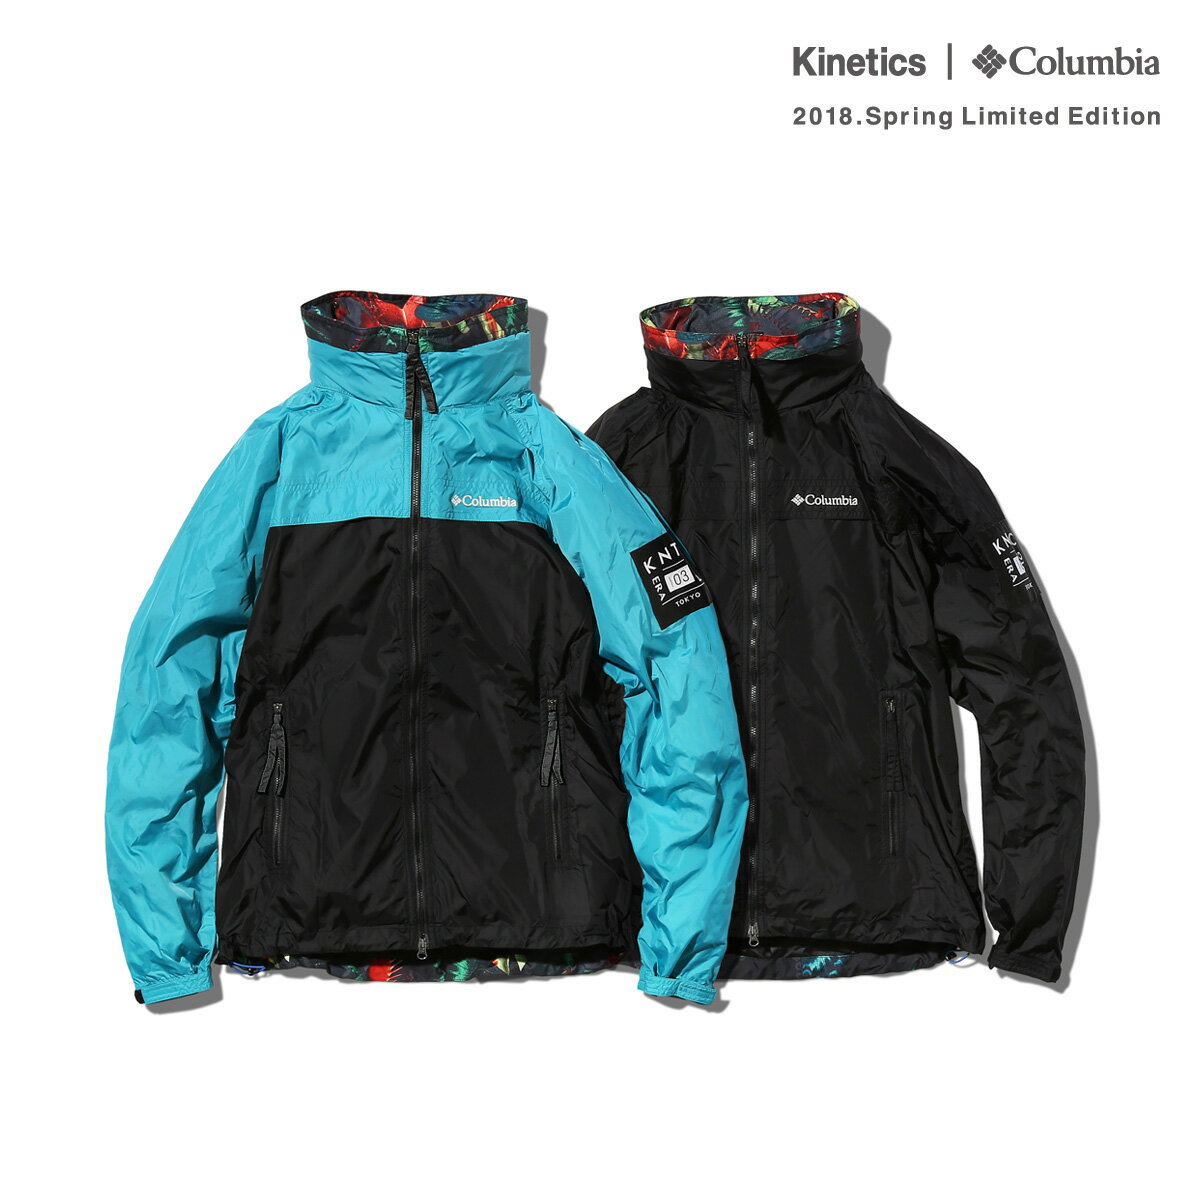 Kinetics × Columbia Sawtooth Jacket (2色展開) 【OMNI-SHIELD】【撥水】【防汚】【18SP-S】